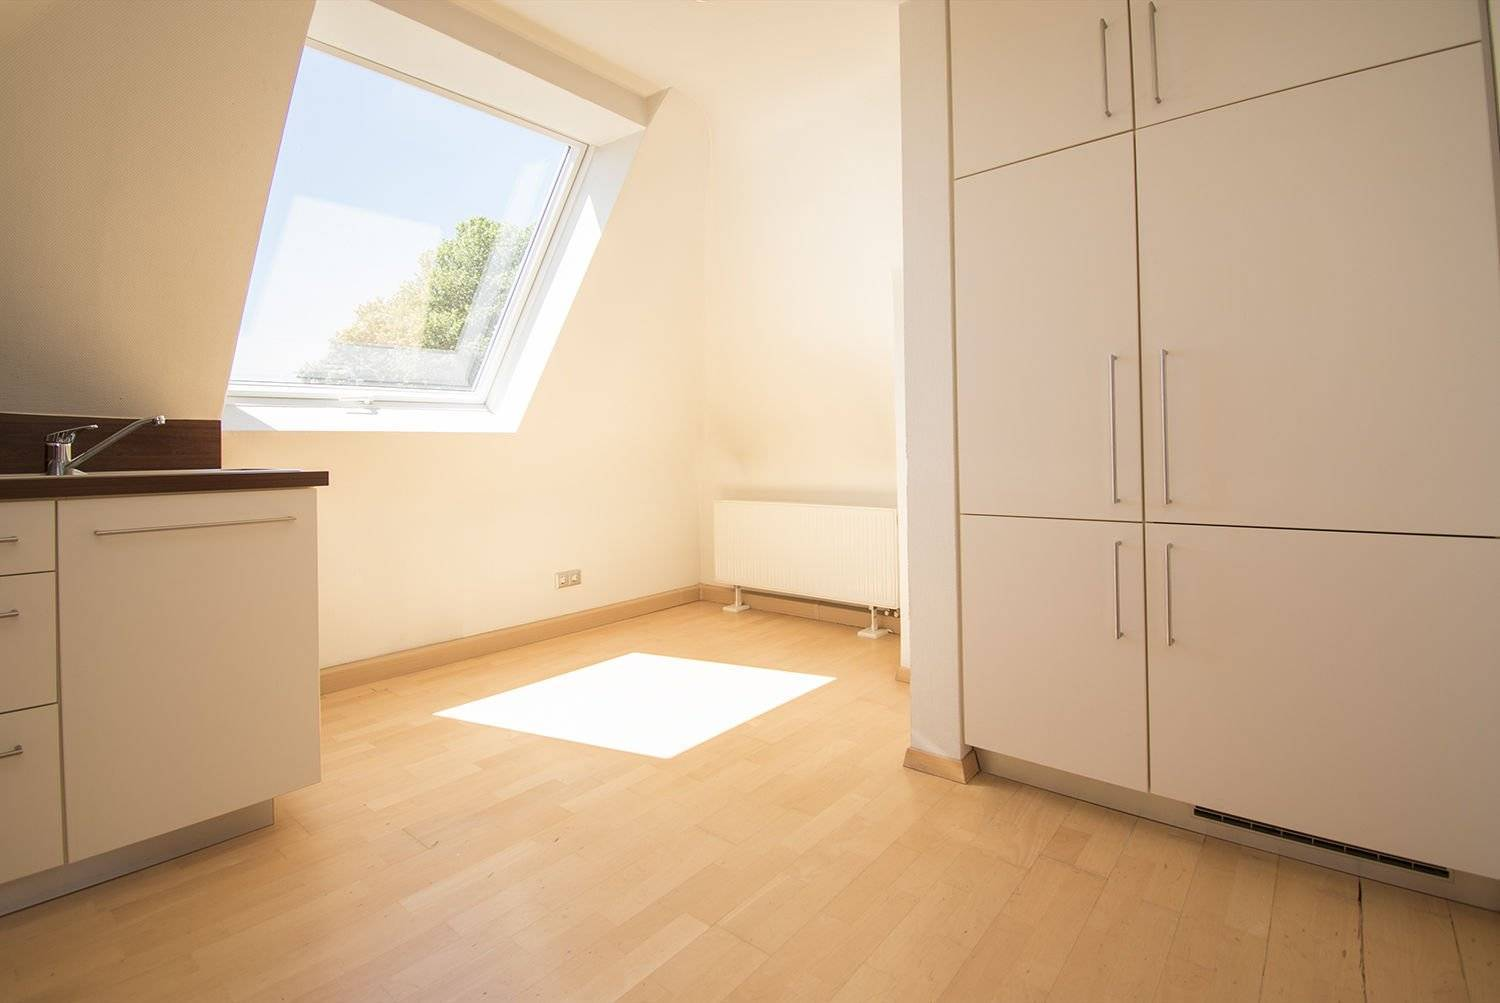 Location Appartement Saarbrücken